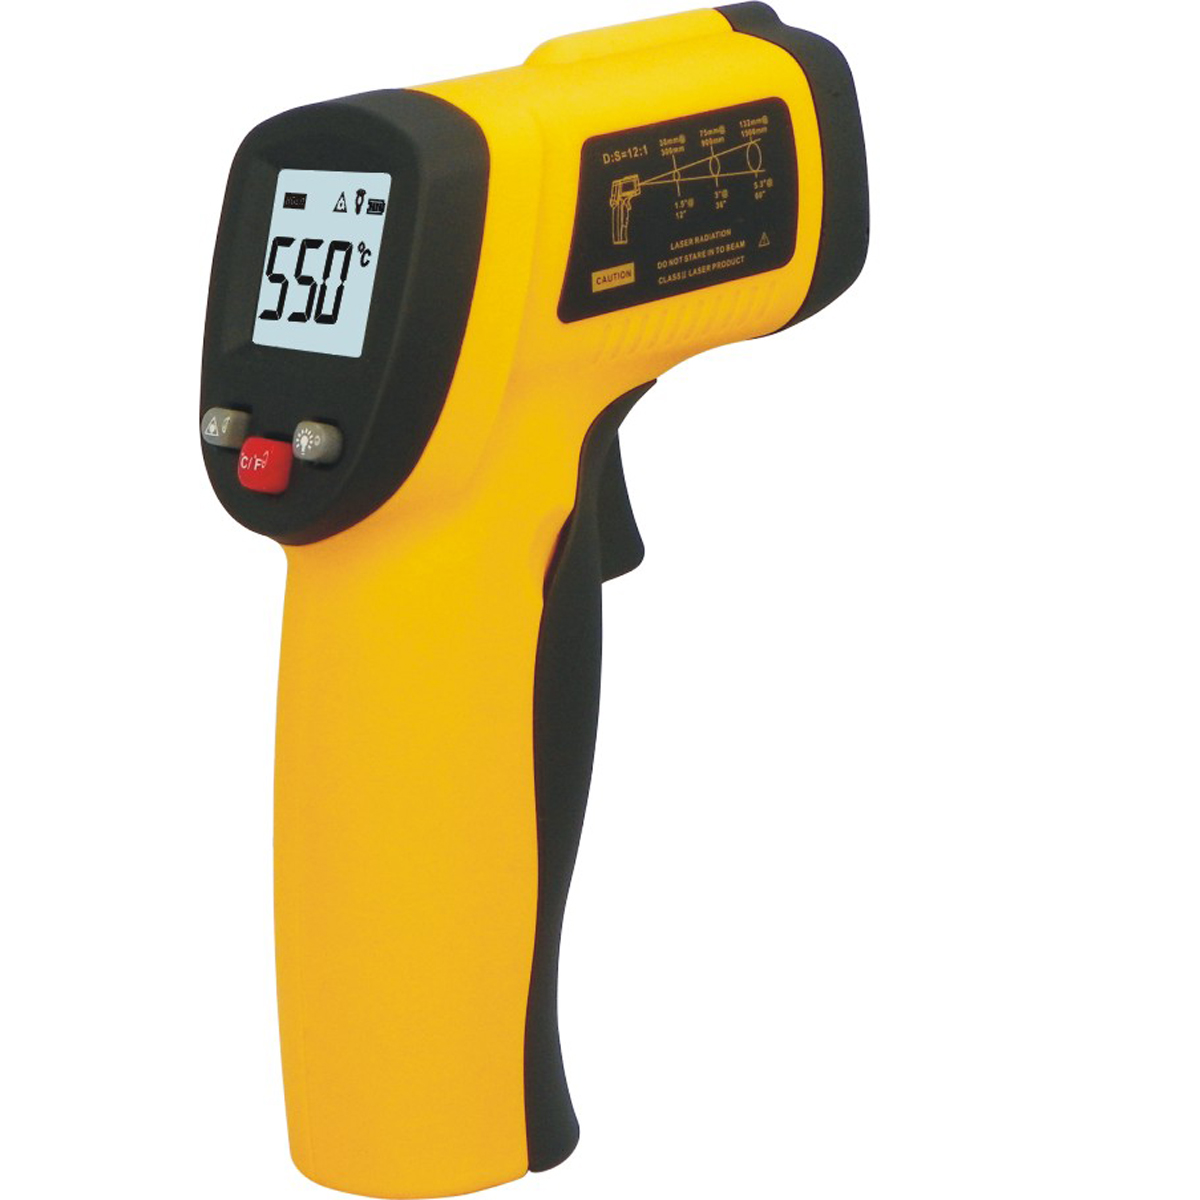 Professional Digital Infrared Thermometer Non-contact Temperature Tester IR Temperature Laser Gun Device Range -50 to 330C TE033(China (Mainland))